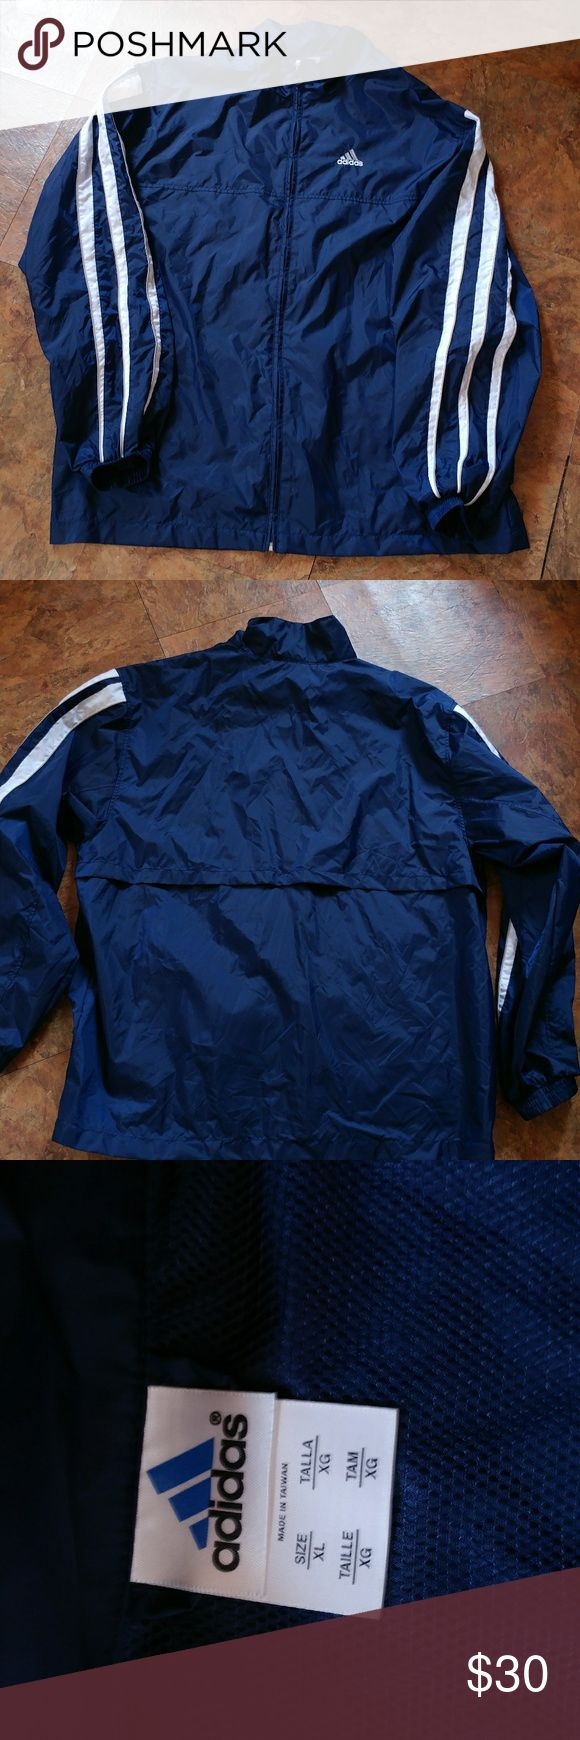 Men's Retro Adidas Windbreaker Very good condition, no signs of wear. 27 inches pit to pit, 31 inches in length. adidas Jackets & Coats Windbreakers